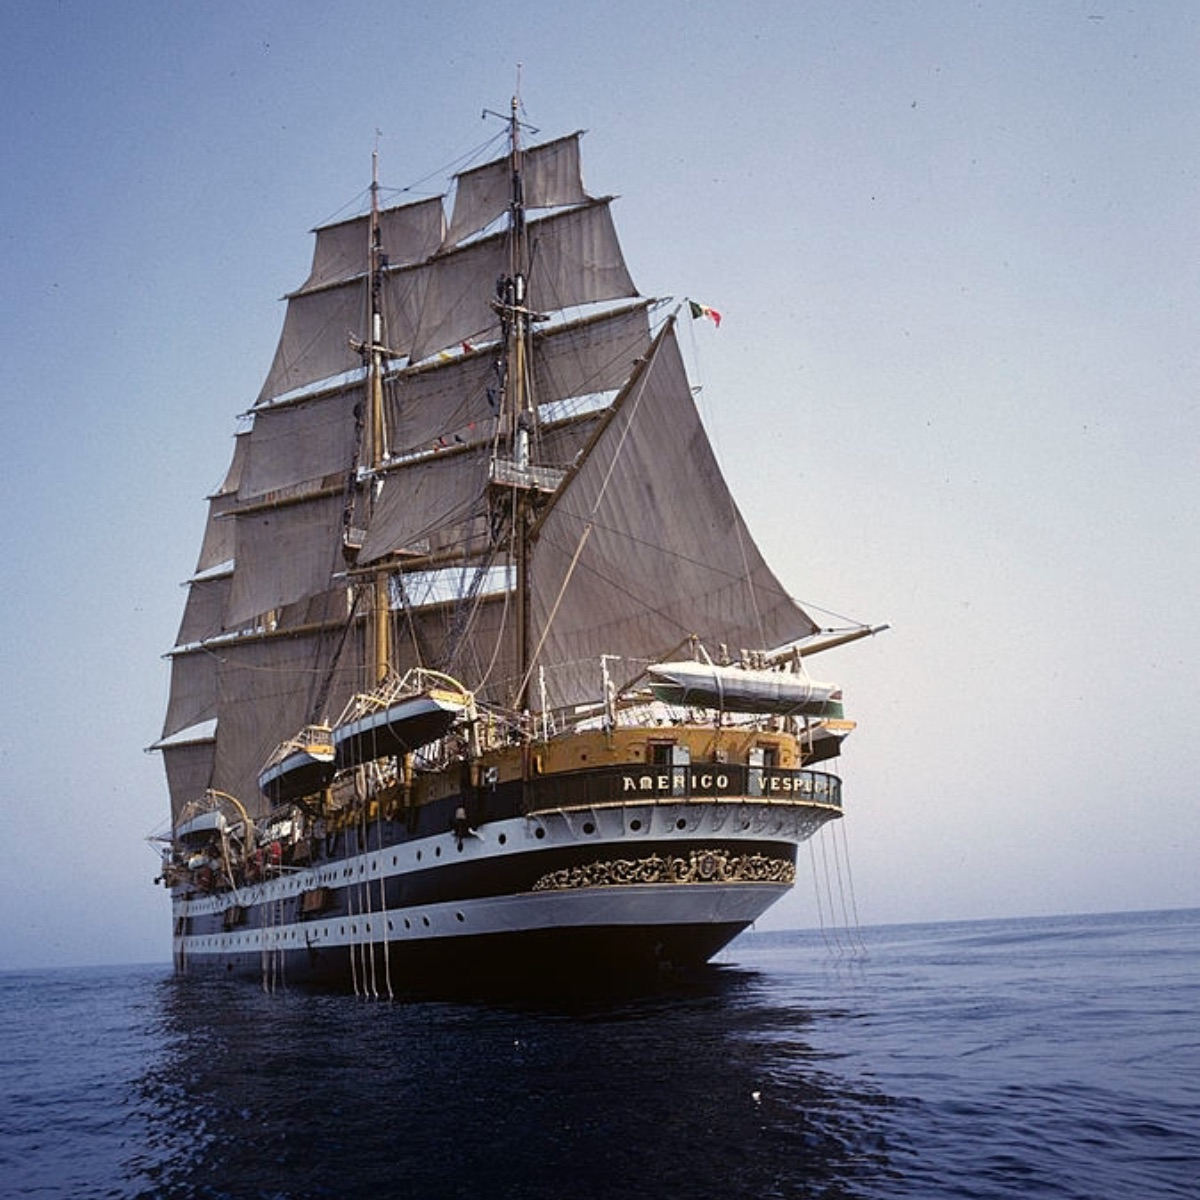 The soling ship Amerigo Vespucci, 1963